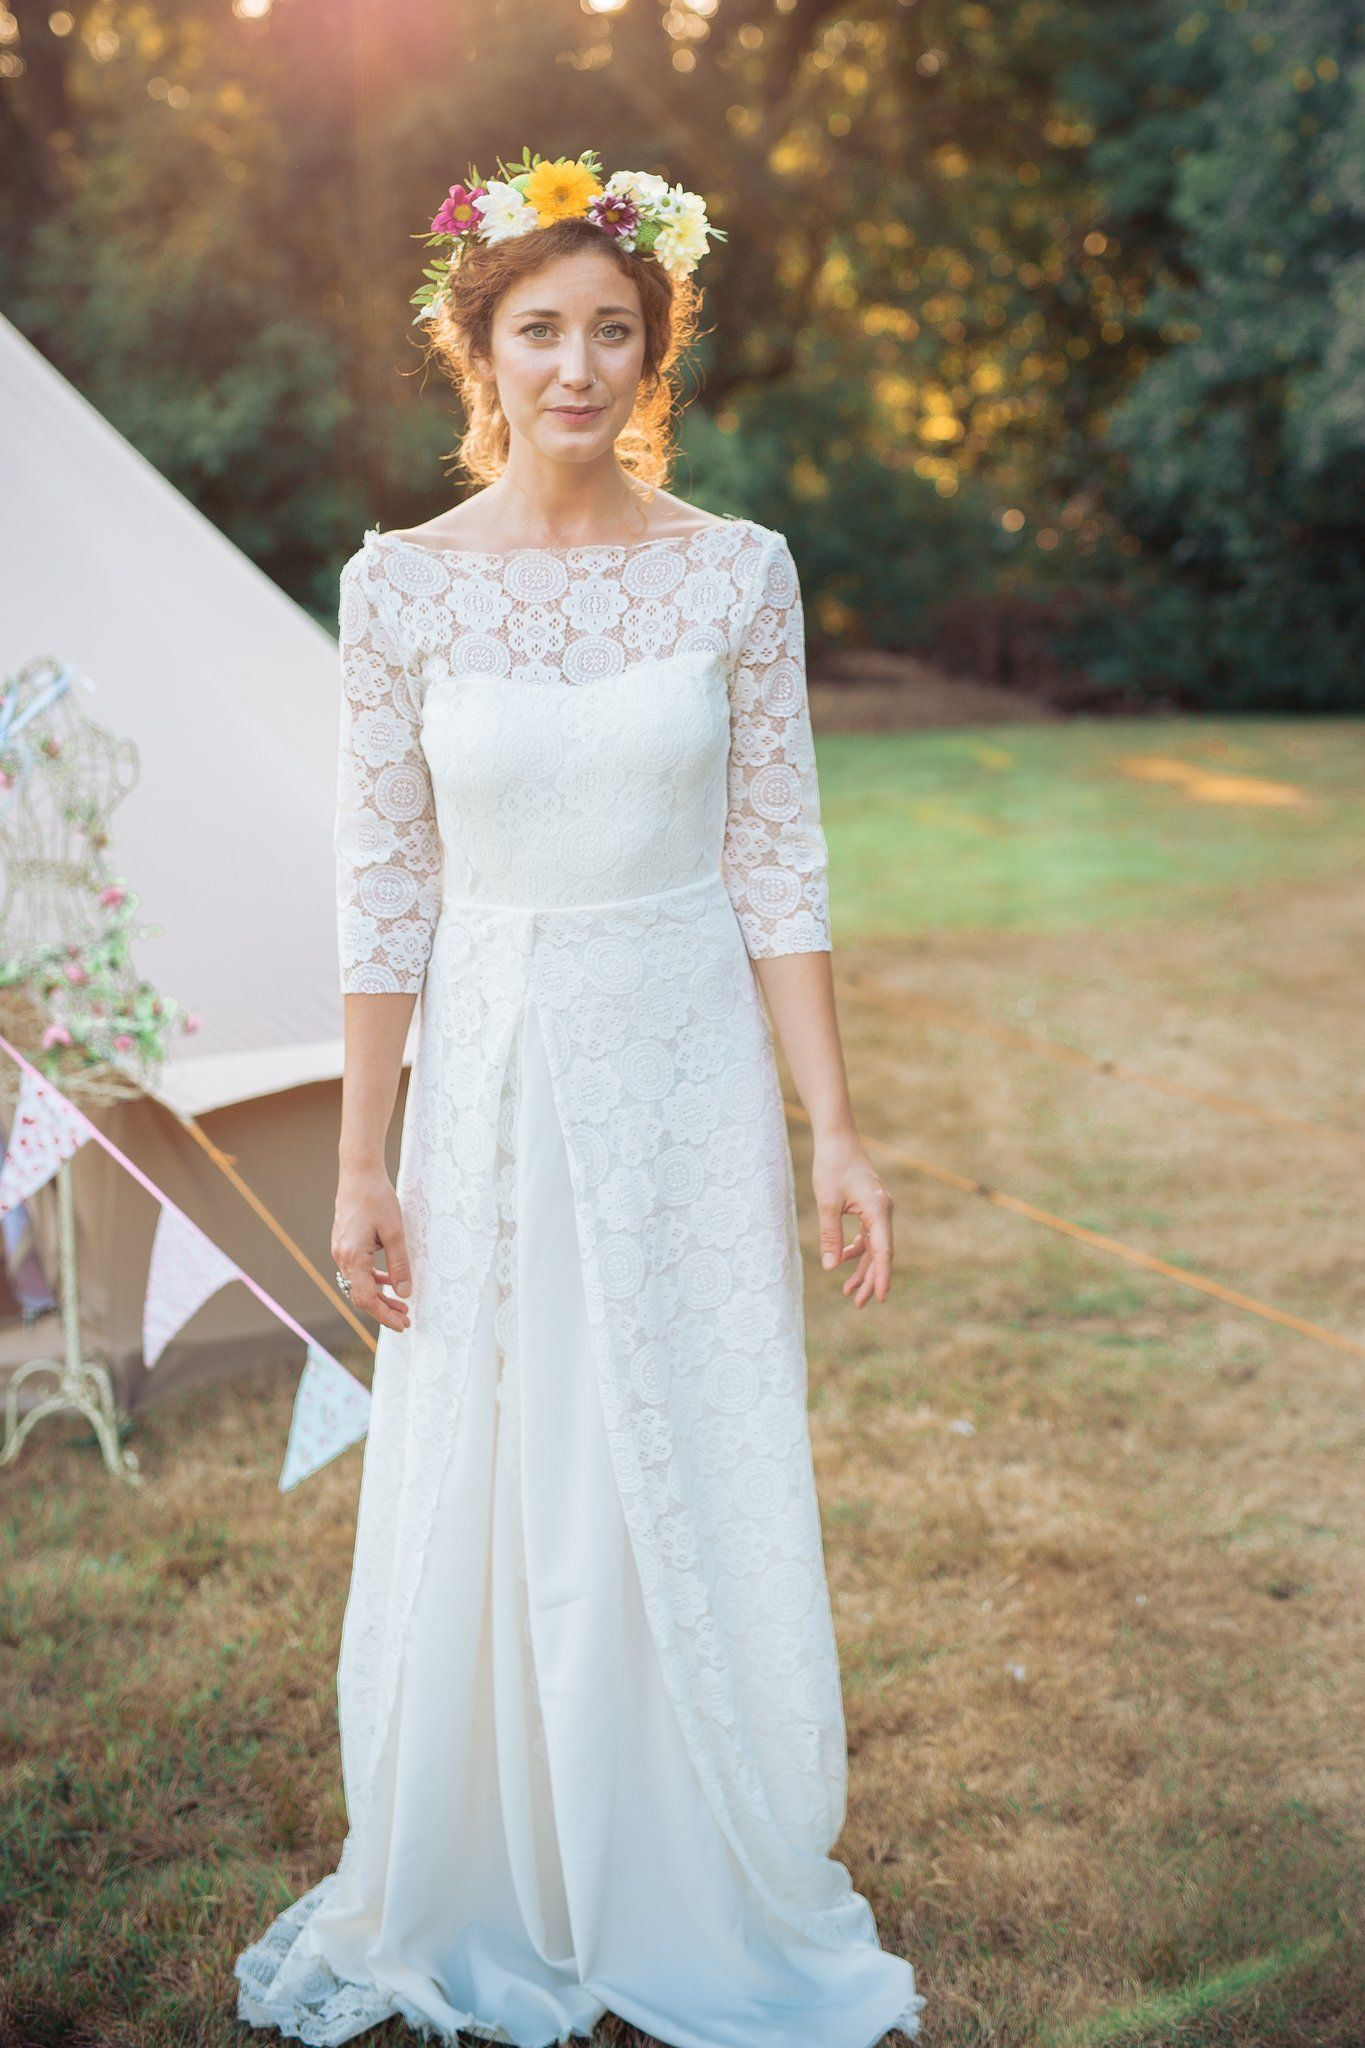 Boho lace wedding dress with sleeves by lucy canut dance low back